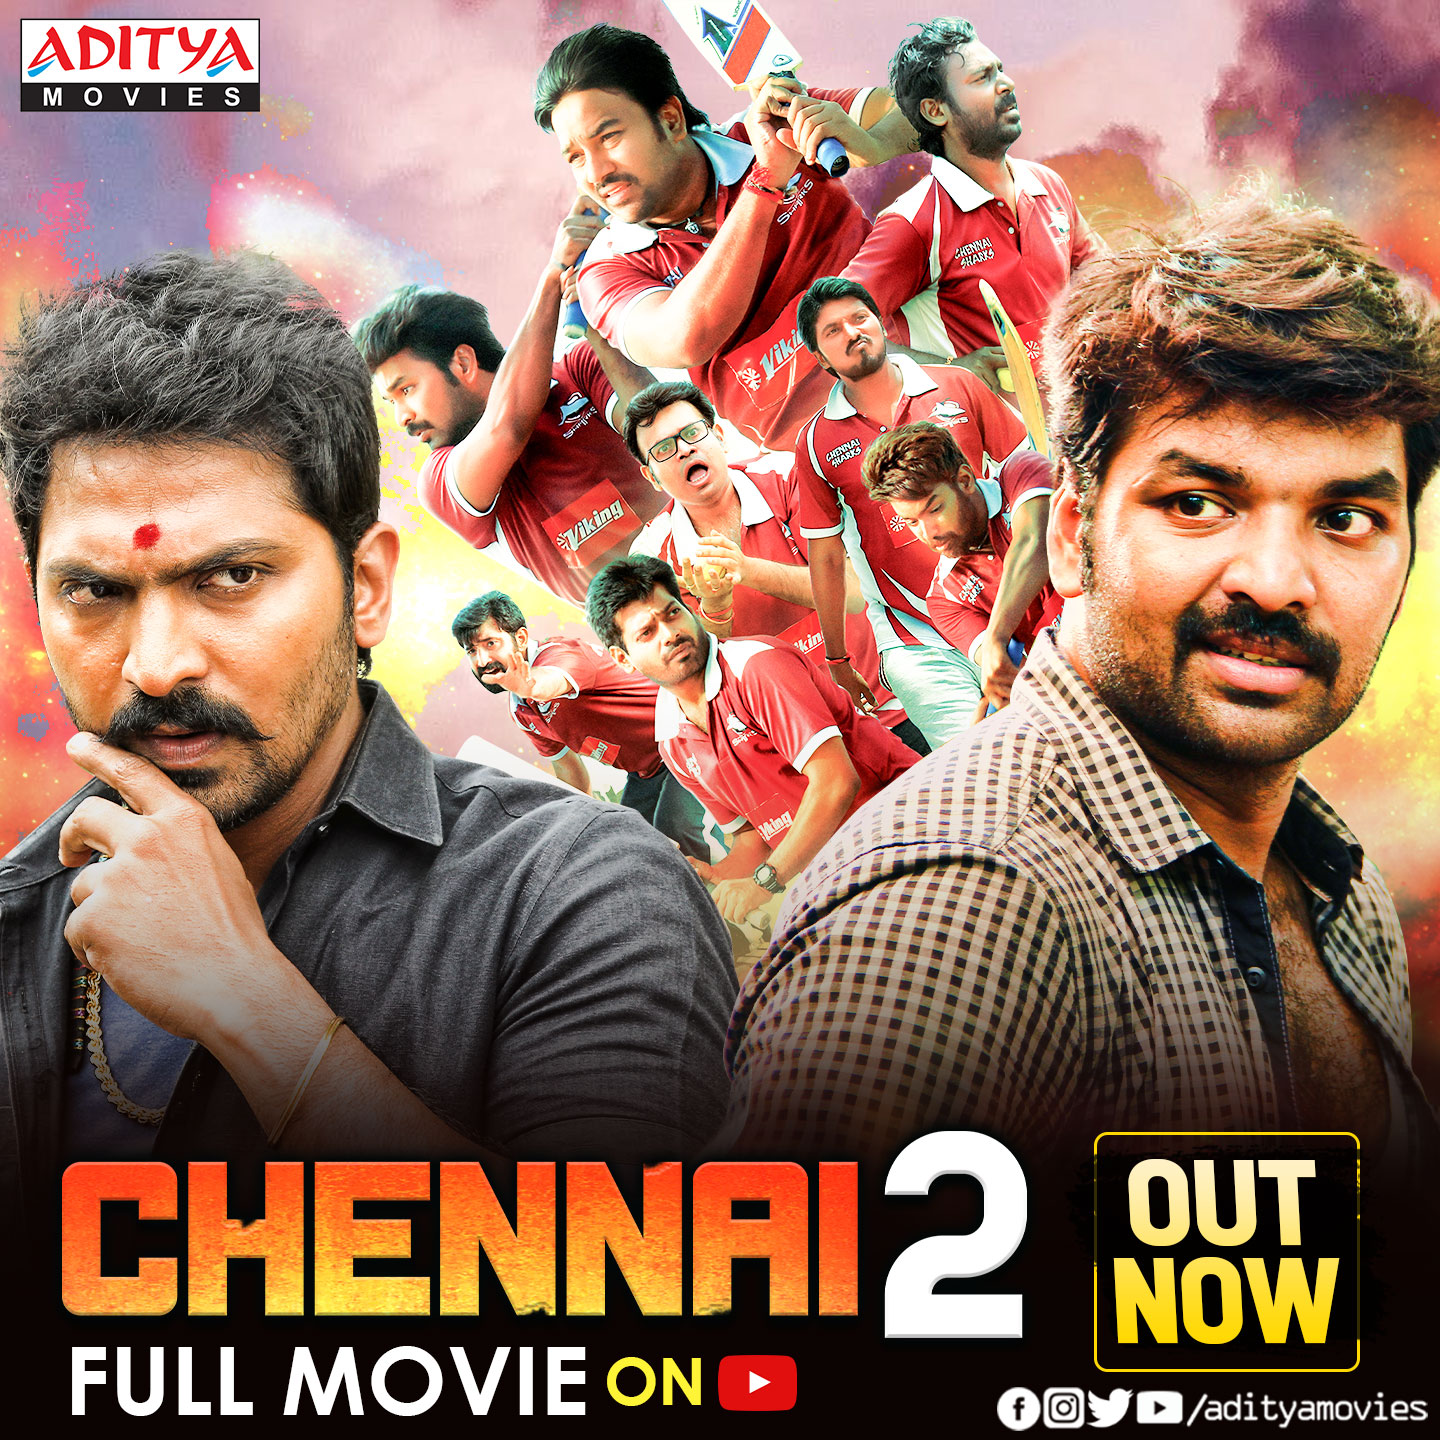 Chennai 2 (Chennai 600028 II) 2021 Hindi Dubbed 410MB HDRip Download